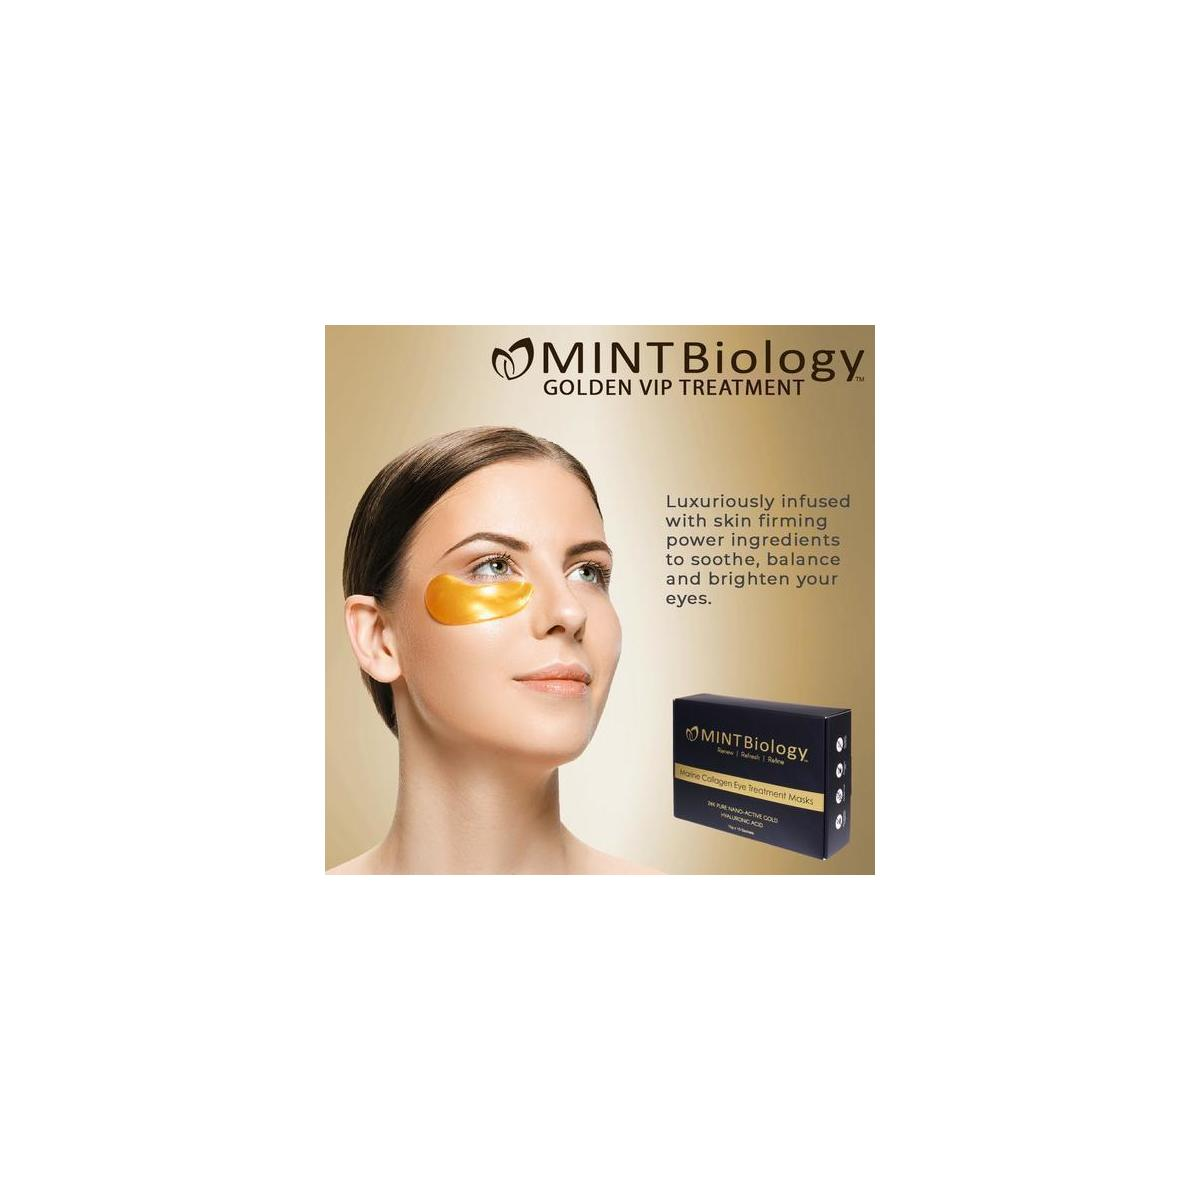 MINTBiology Gold Under Eye Patches -  Perfect GIFT & Get yourself Holiday Ready!